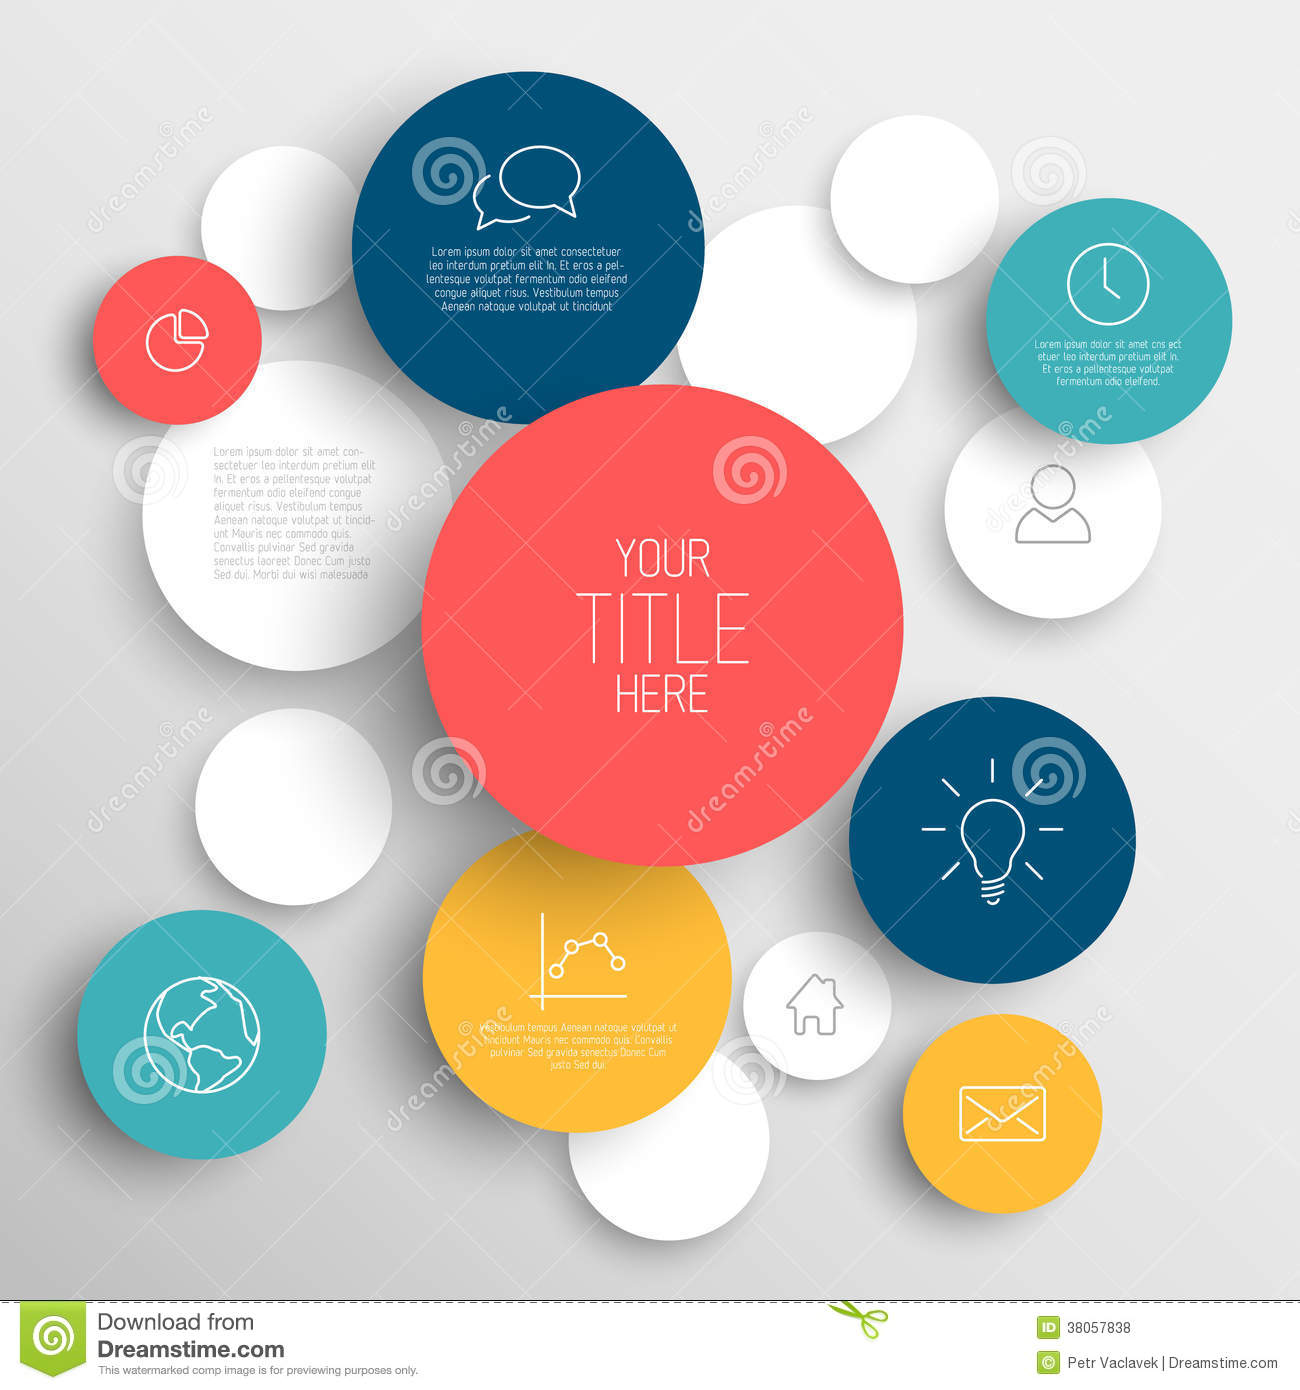 Free circle infographic template download